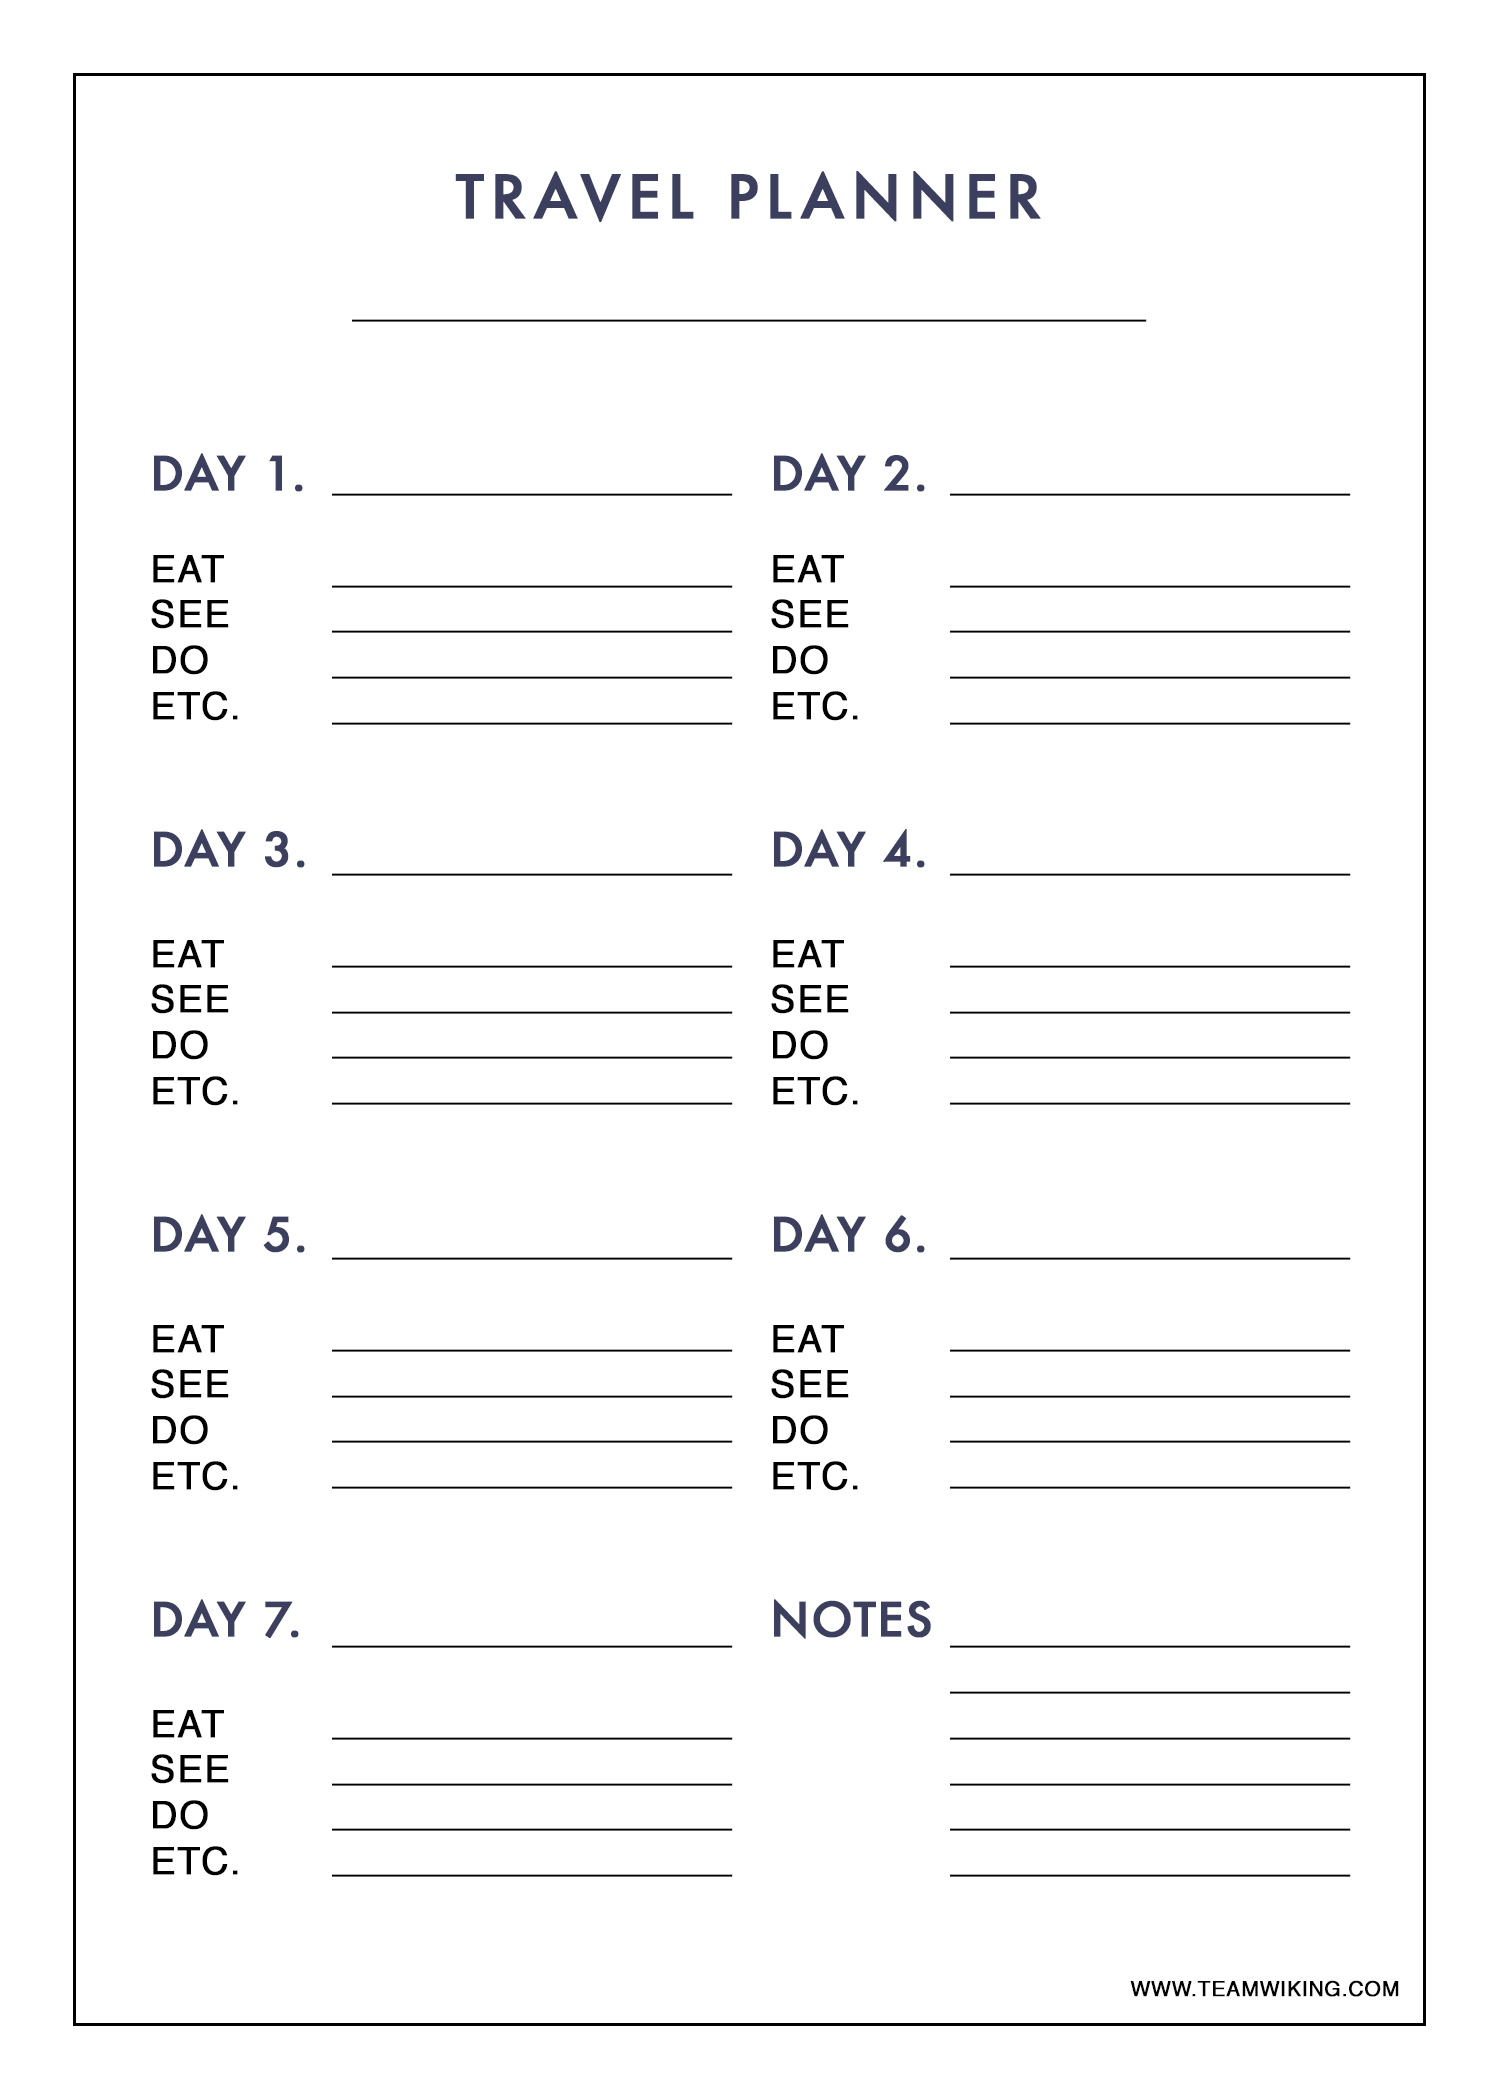 Printable Travel Planner - Hej Doll | Simple modern living ...